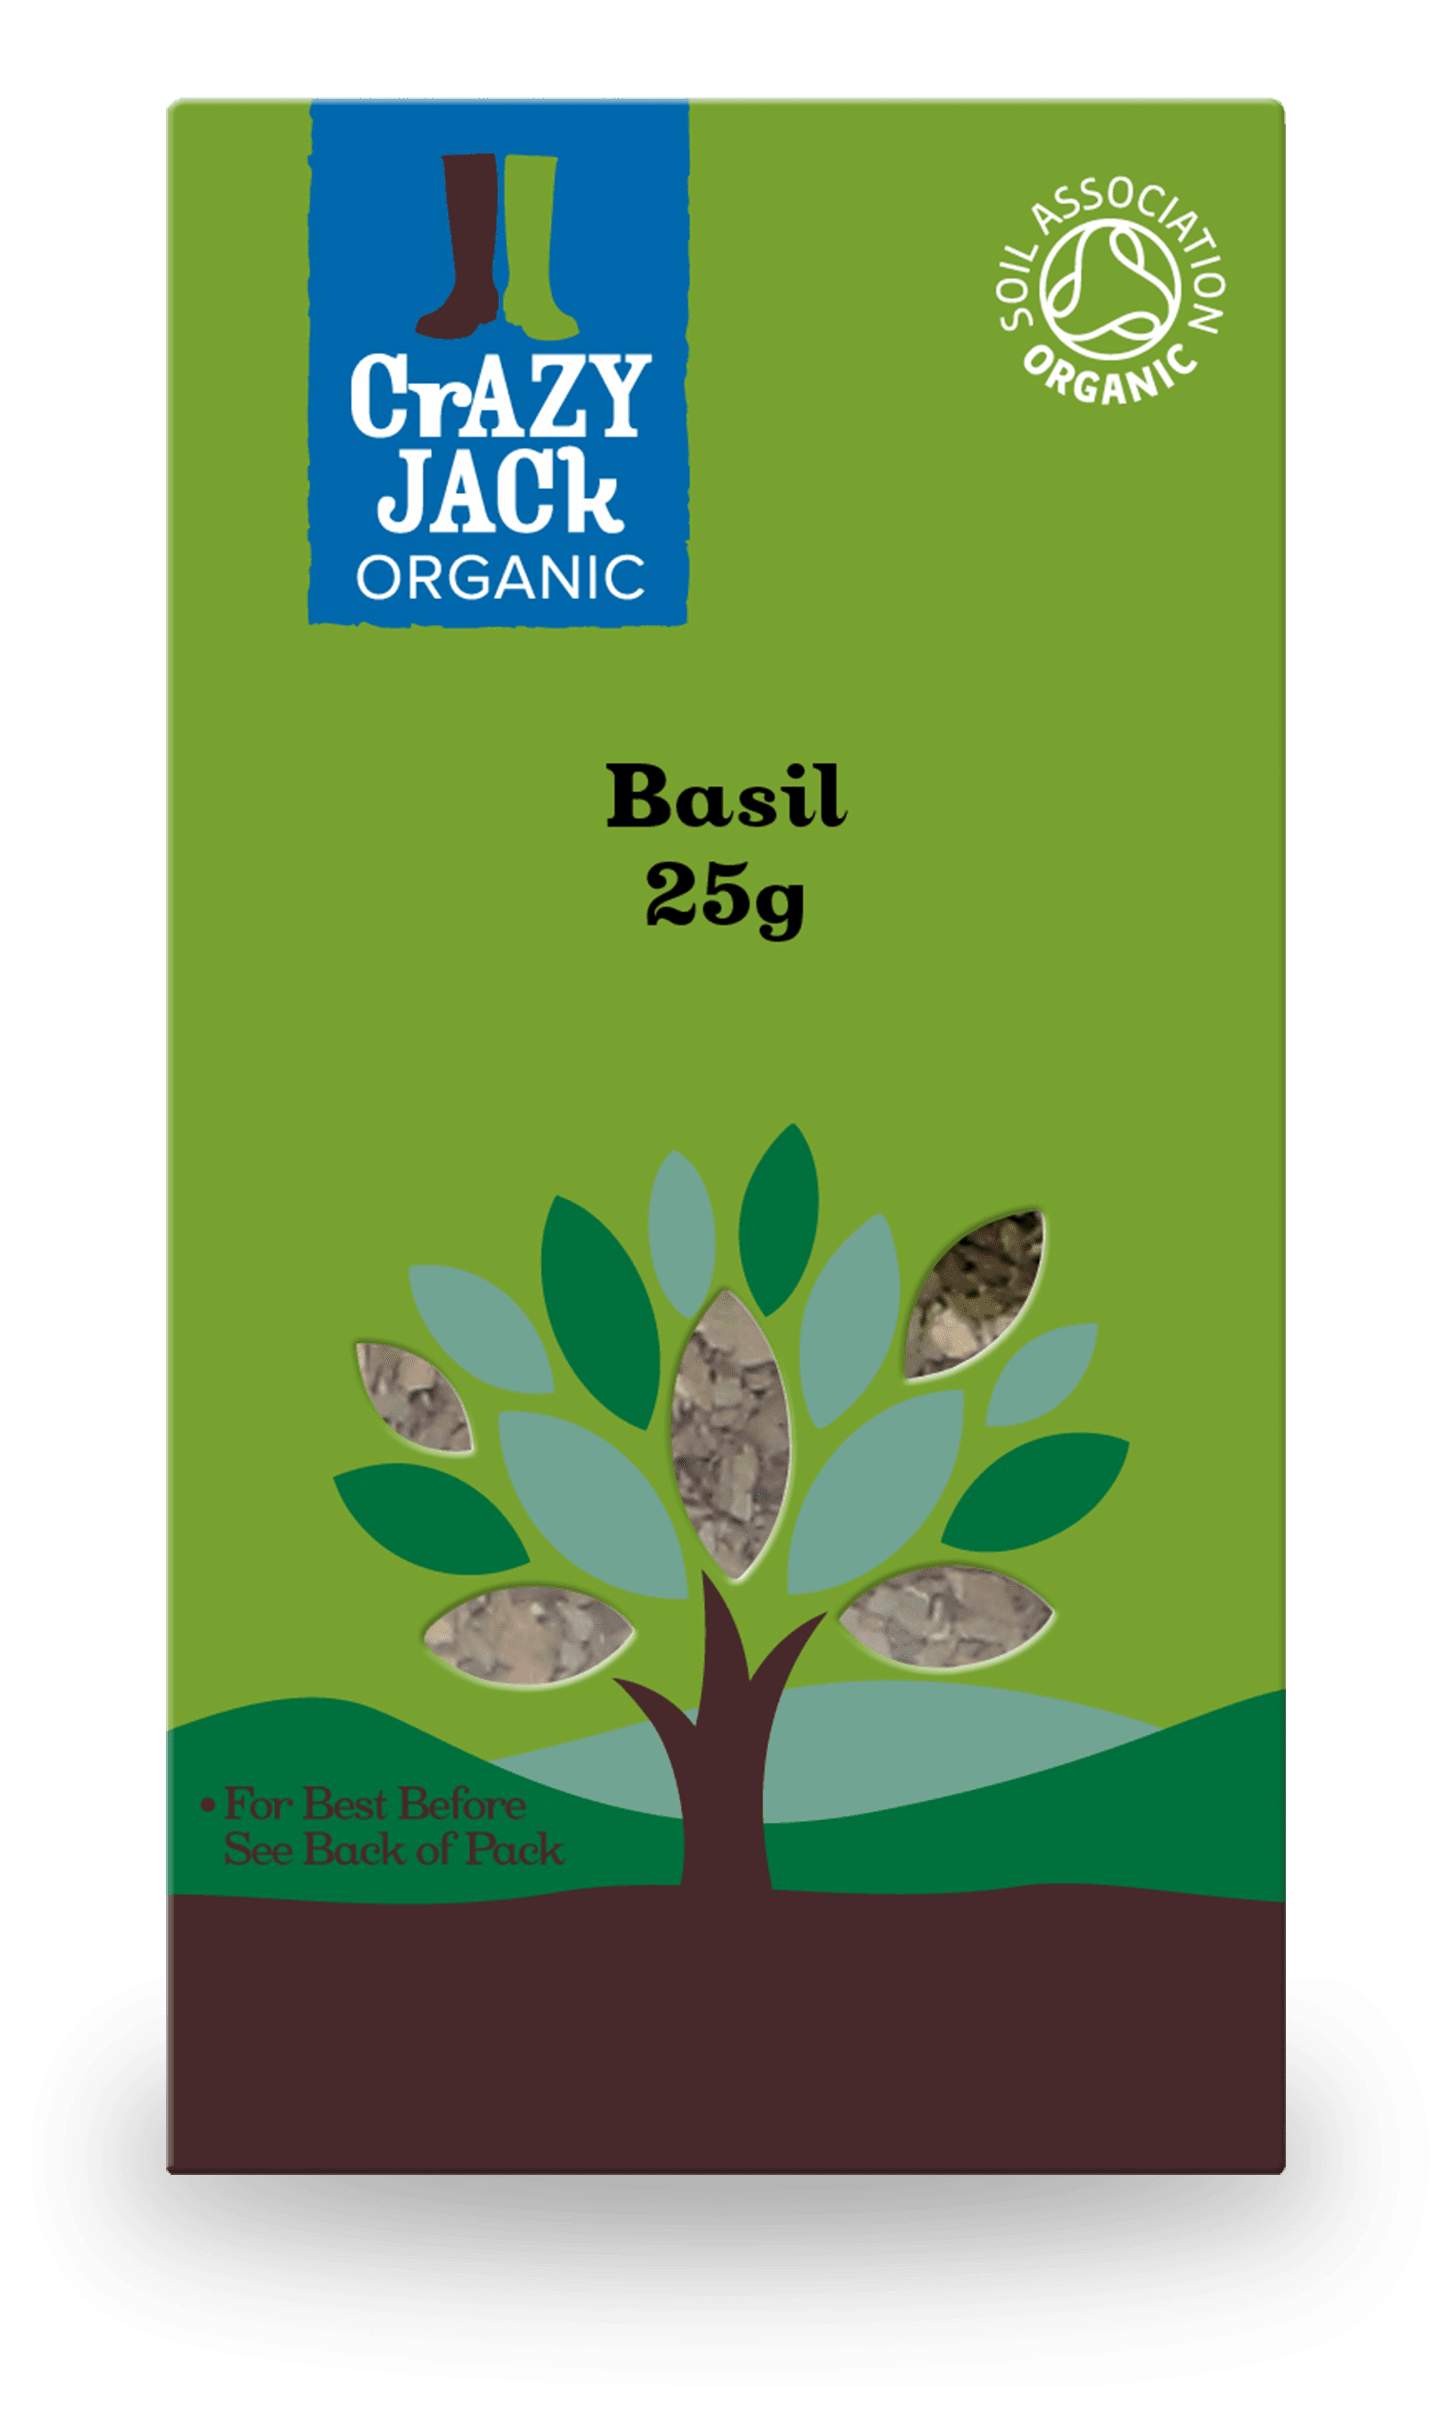 Packaging for 25g of basil